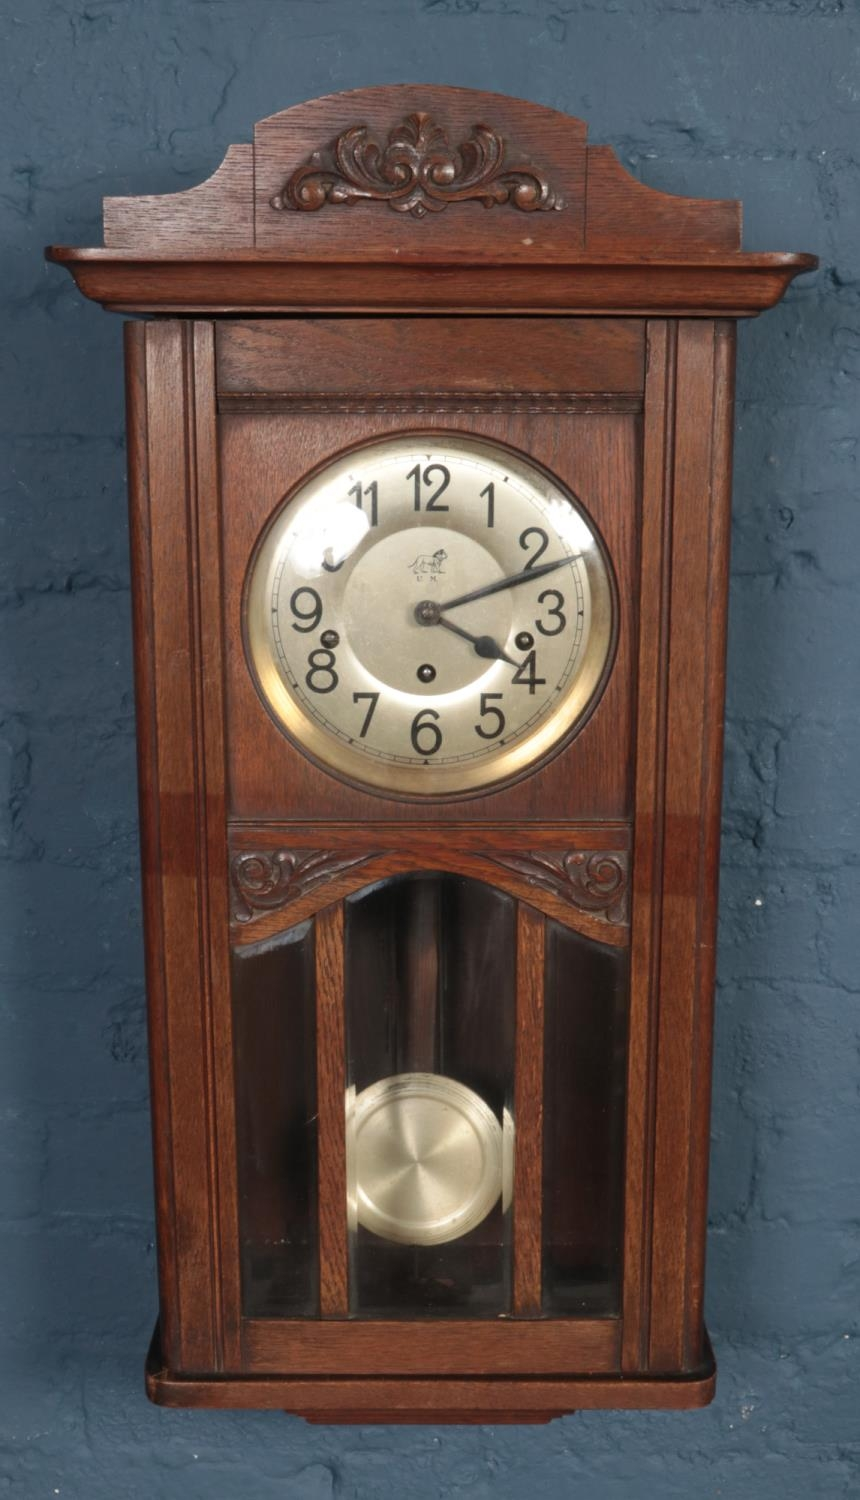 A carved oak Muller & Co. wall clock.